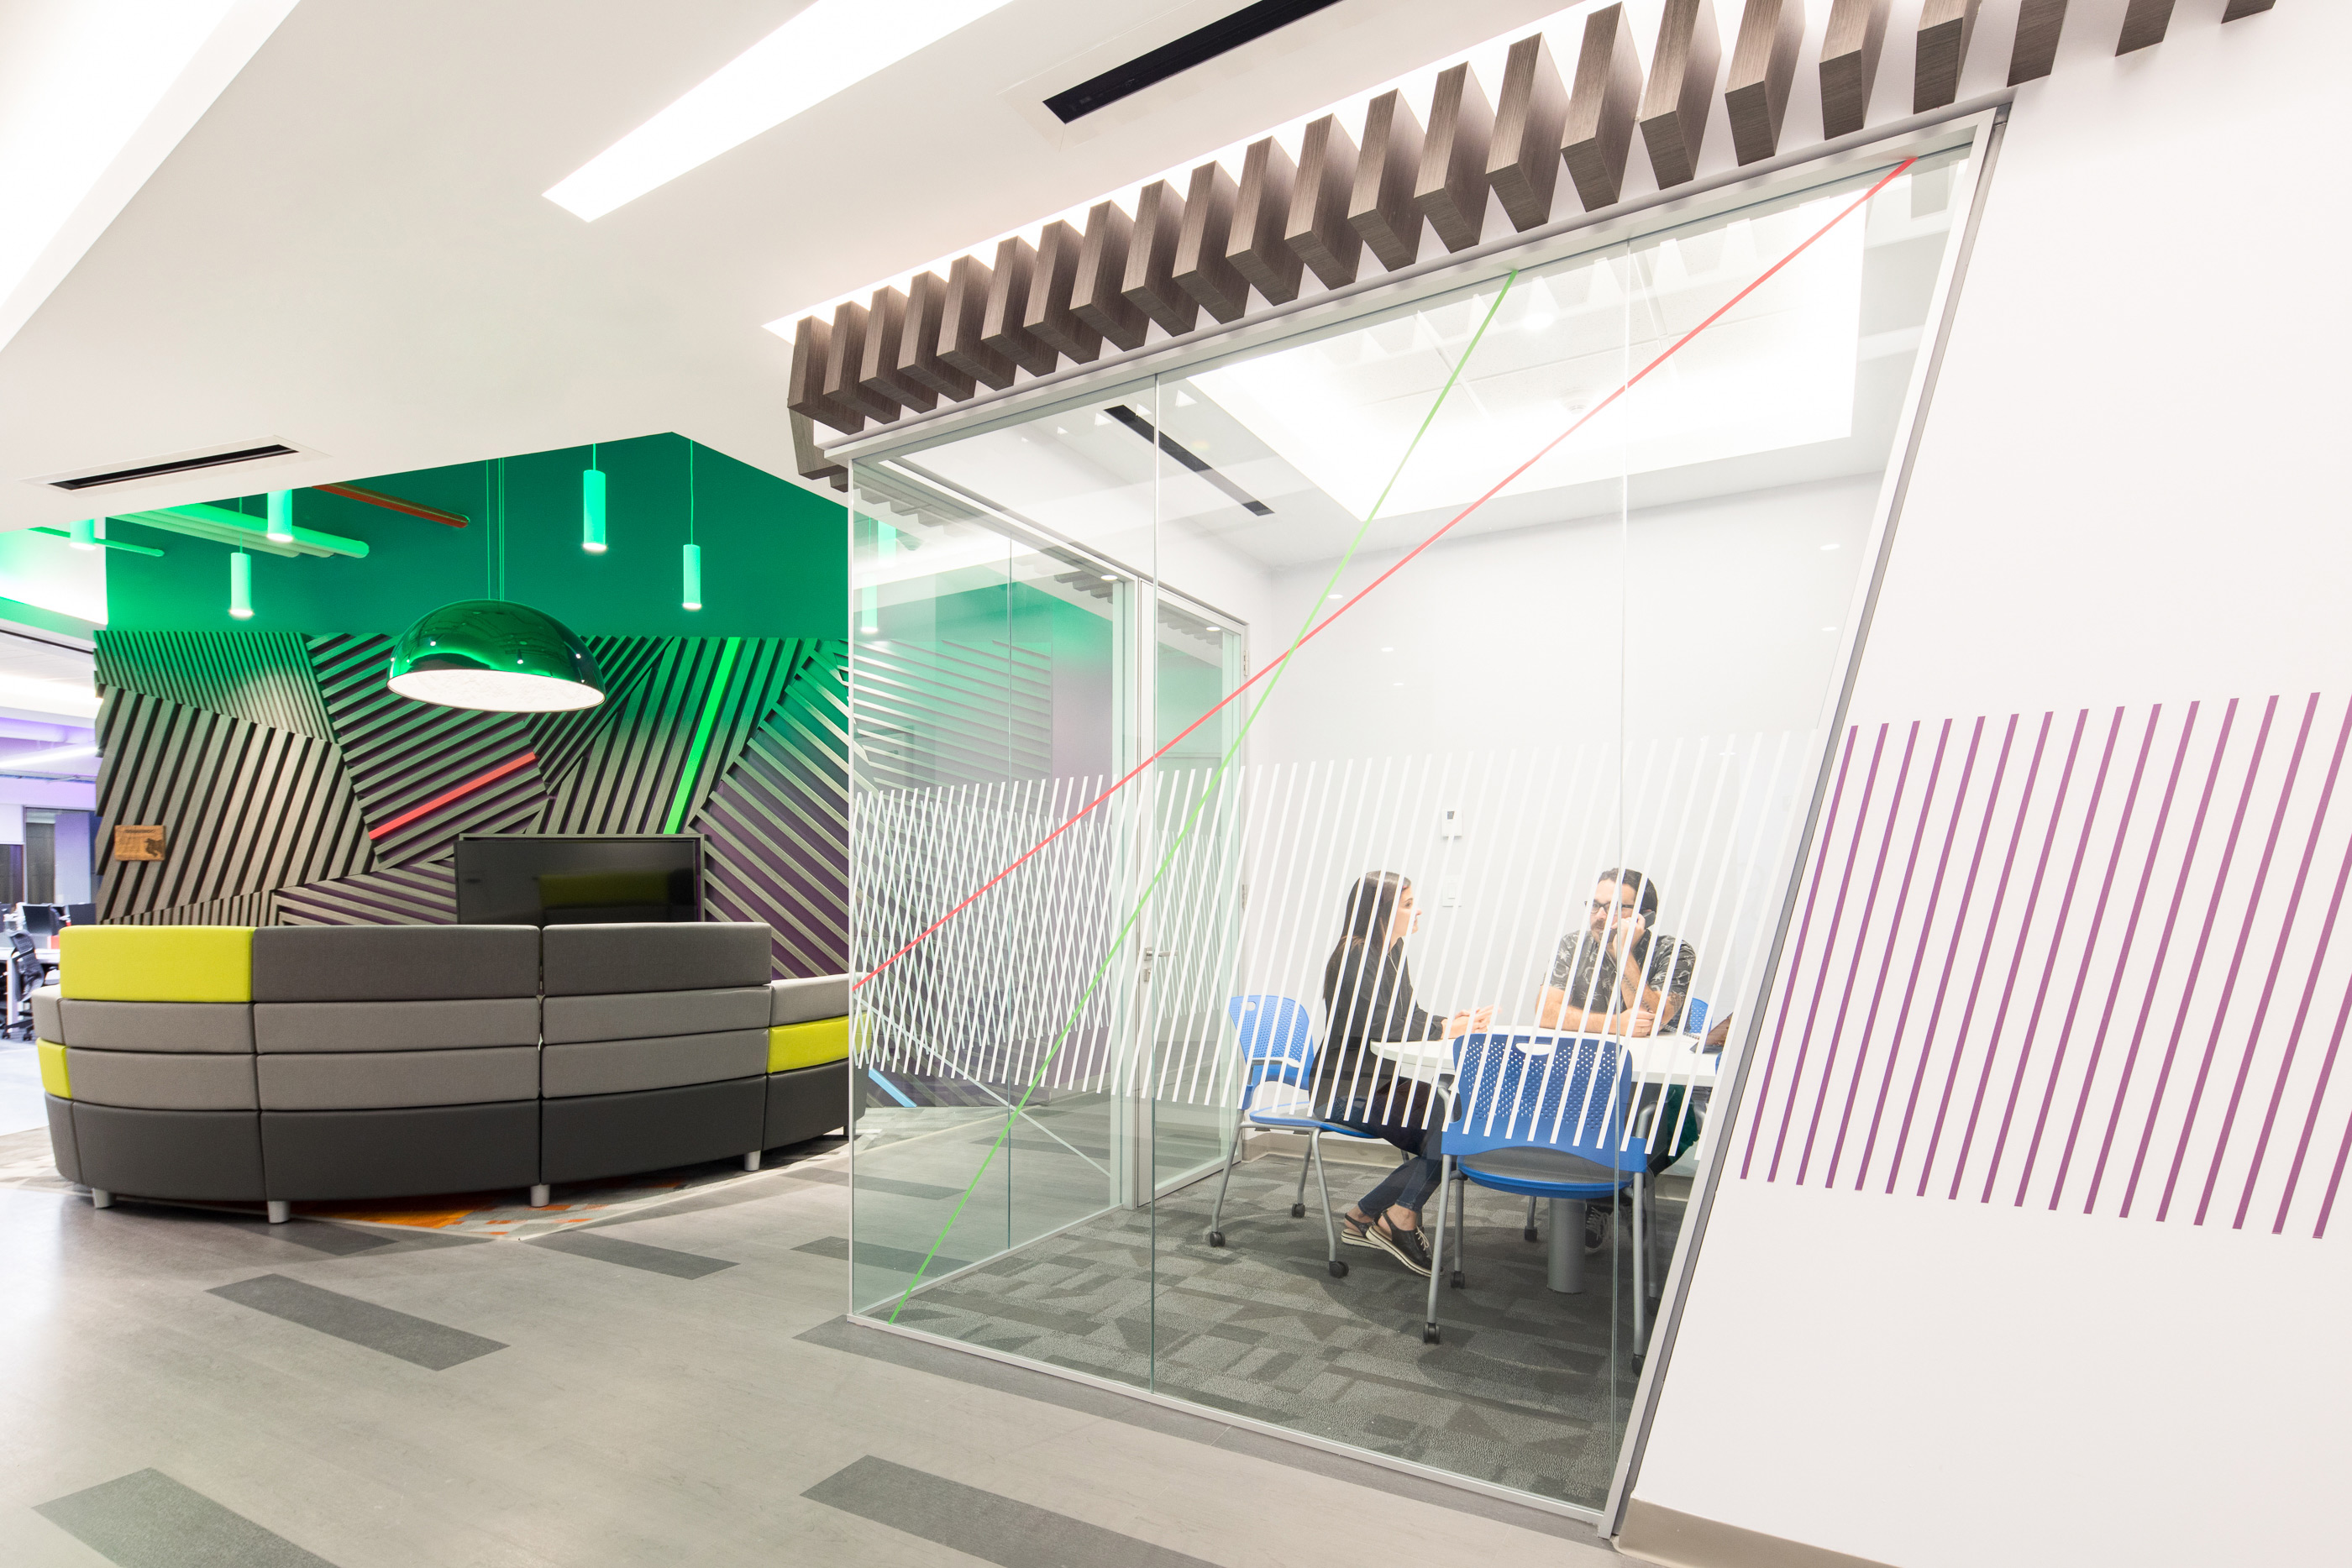 Environmental graphics and interior design for Bayer Office in Costa Rica. Designed by Bosque. @enviromeant.com